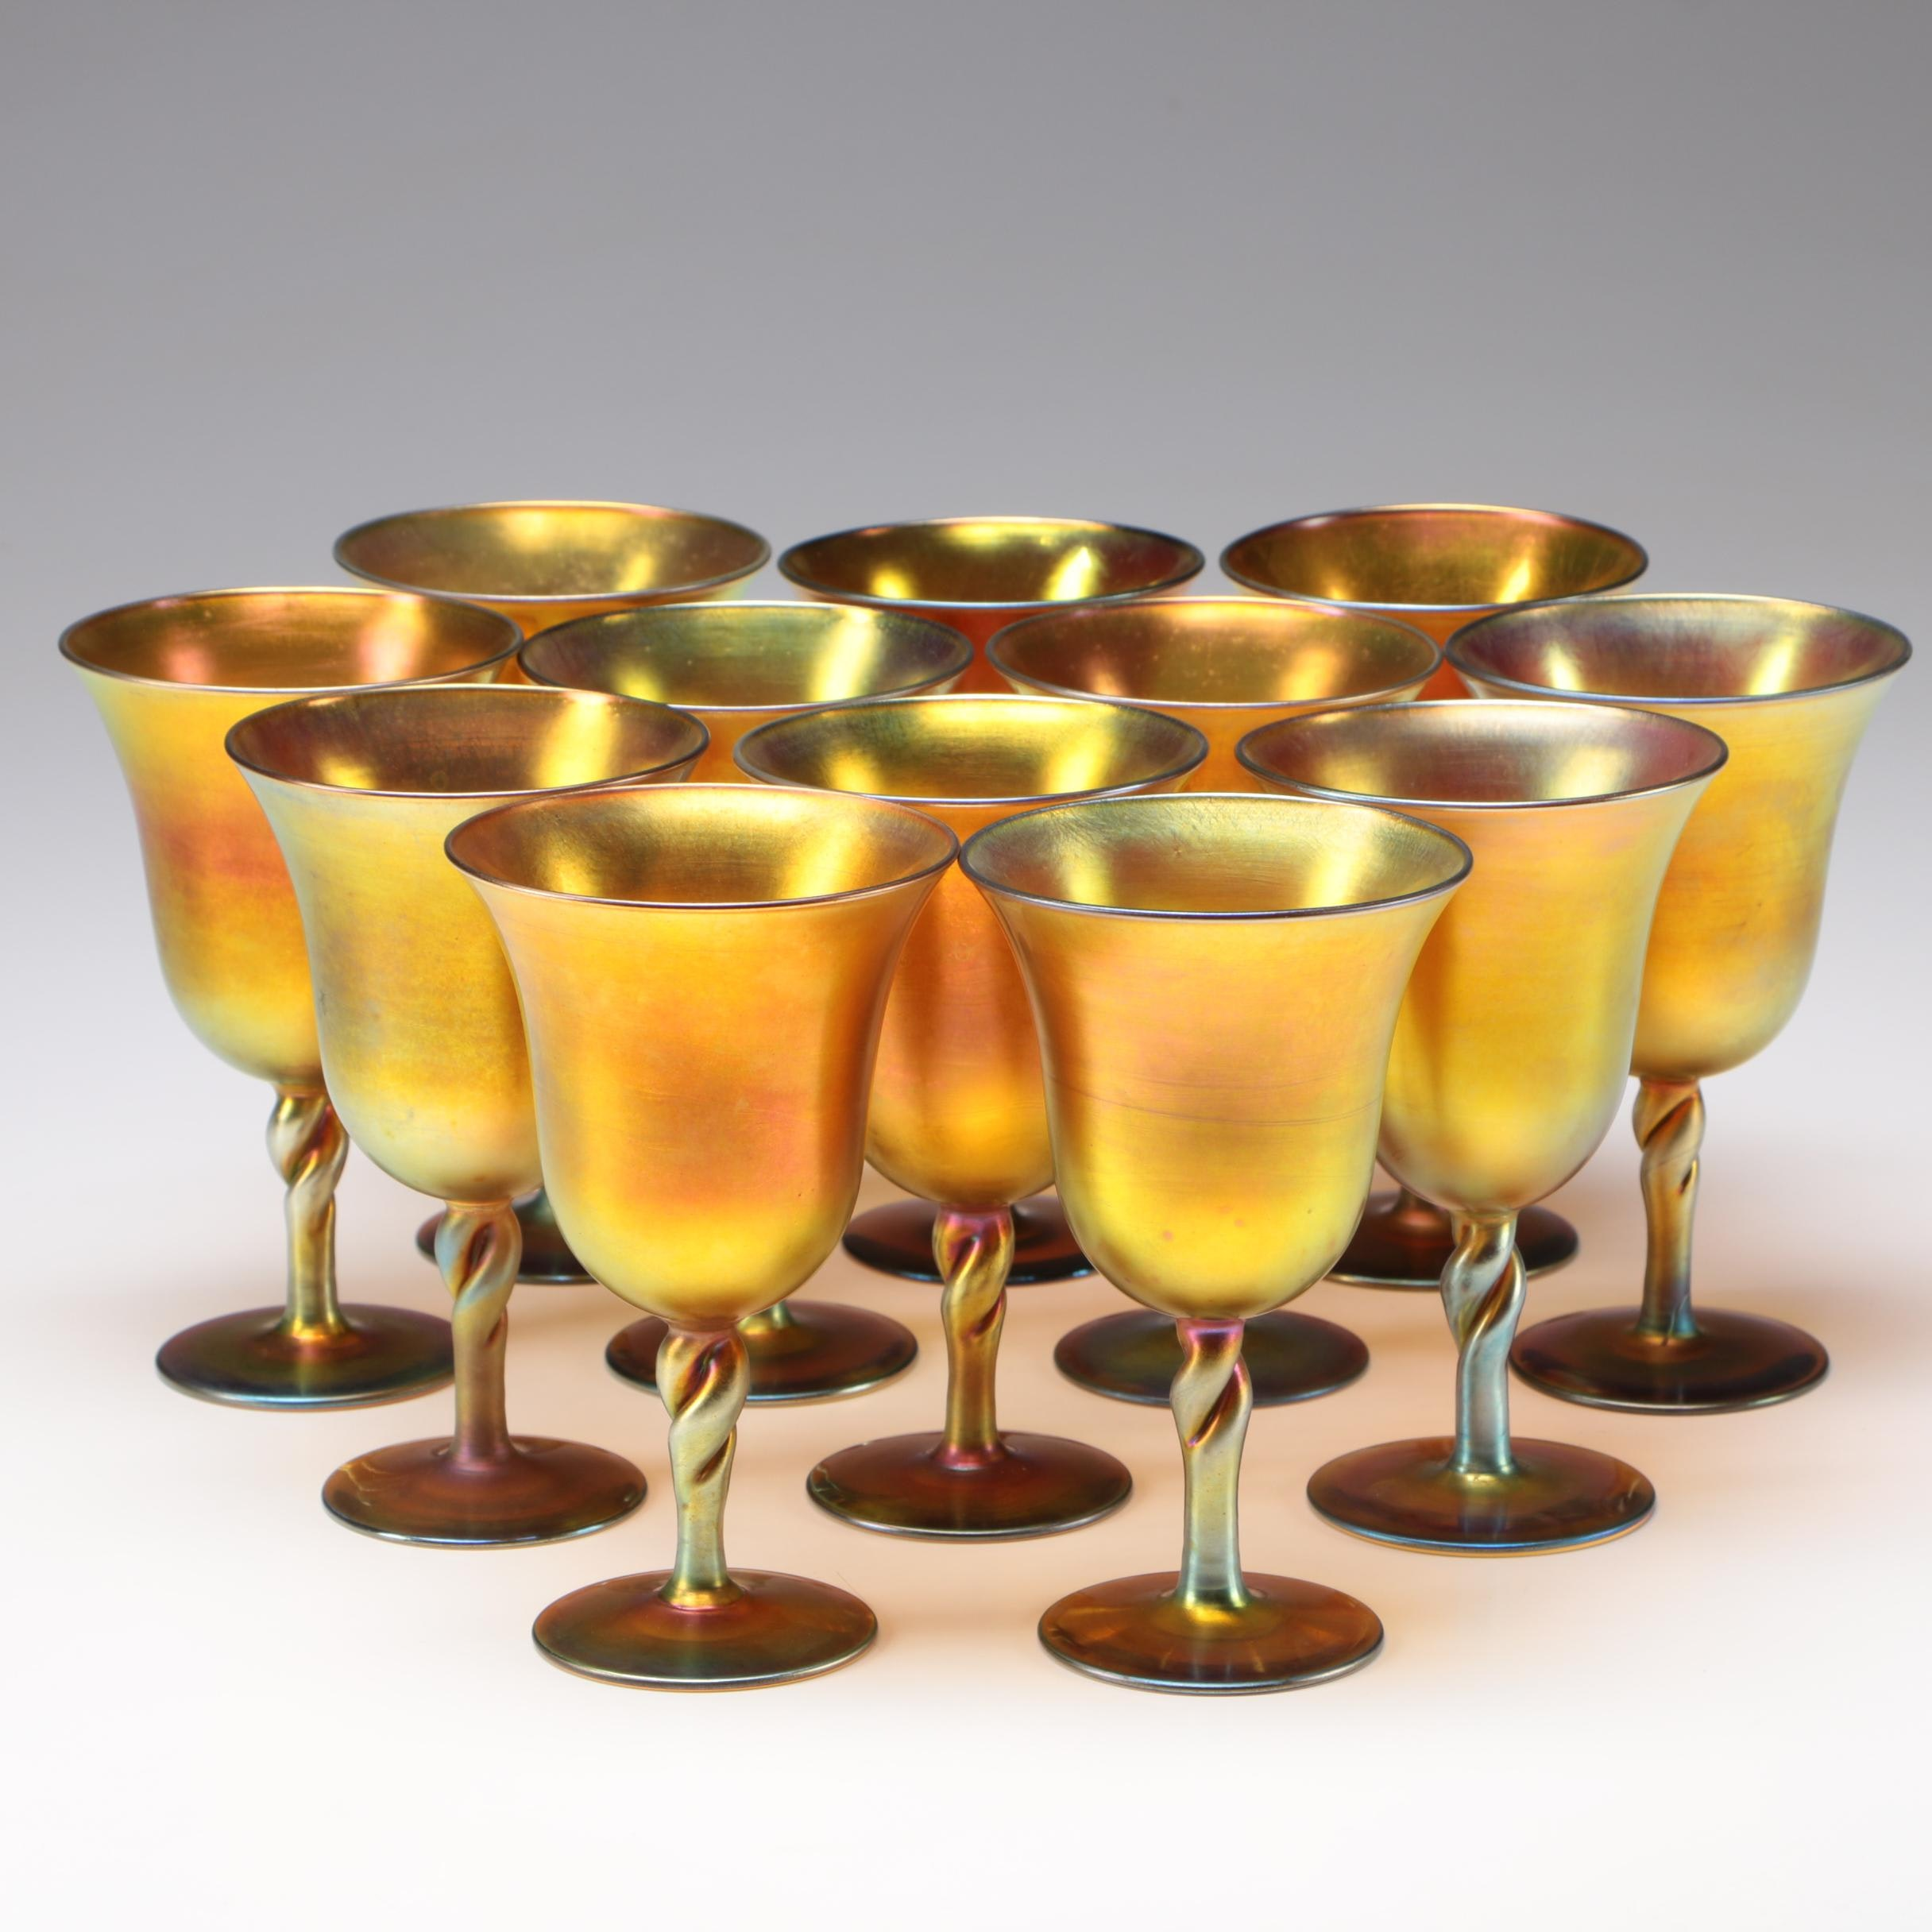 Steuben Art Glass Gold Aurene Goblet Set Designed by Frederick Carder, c.1923